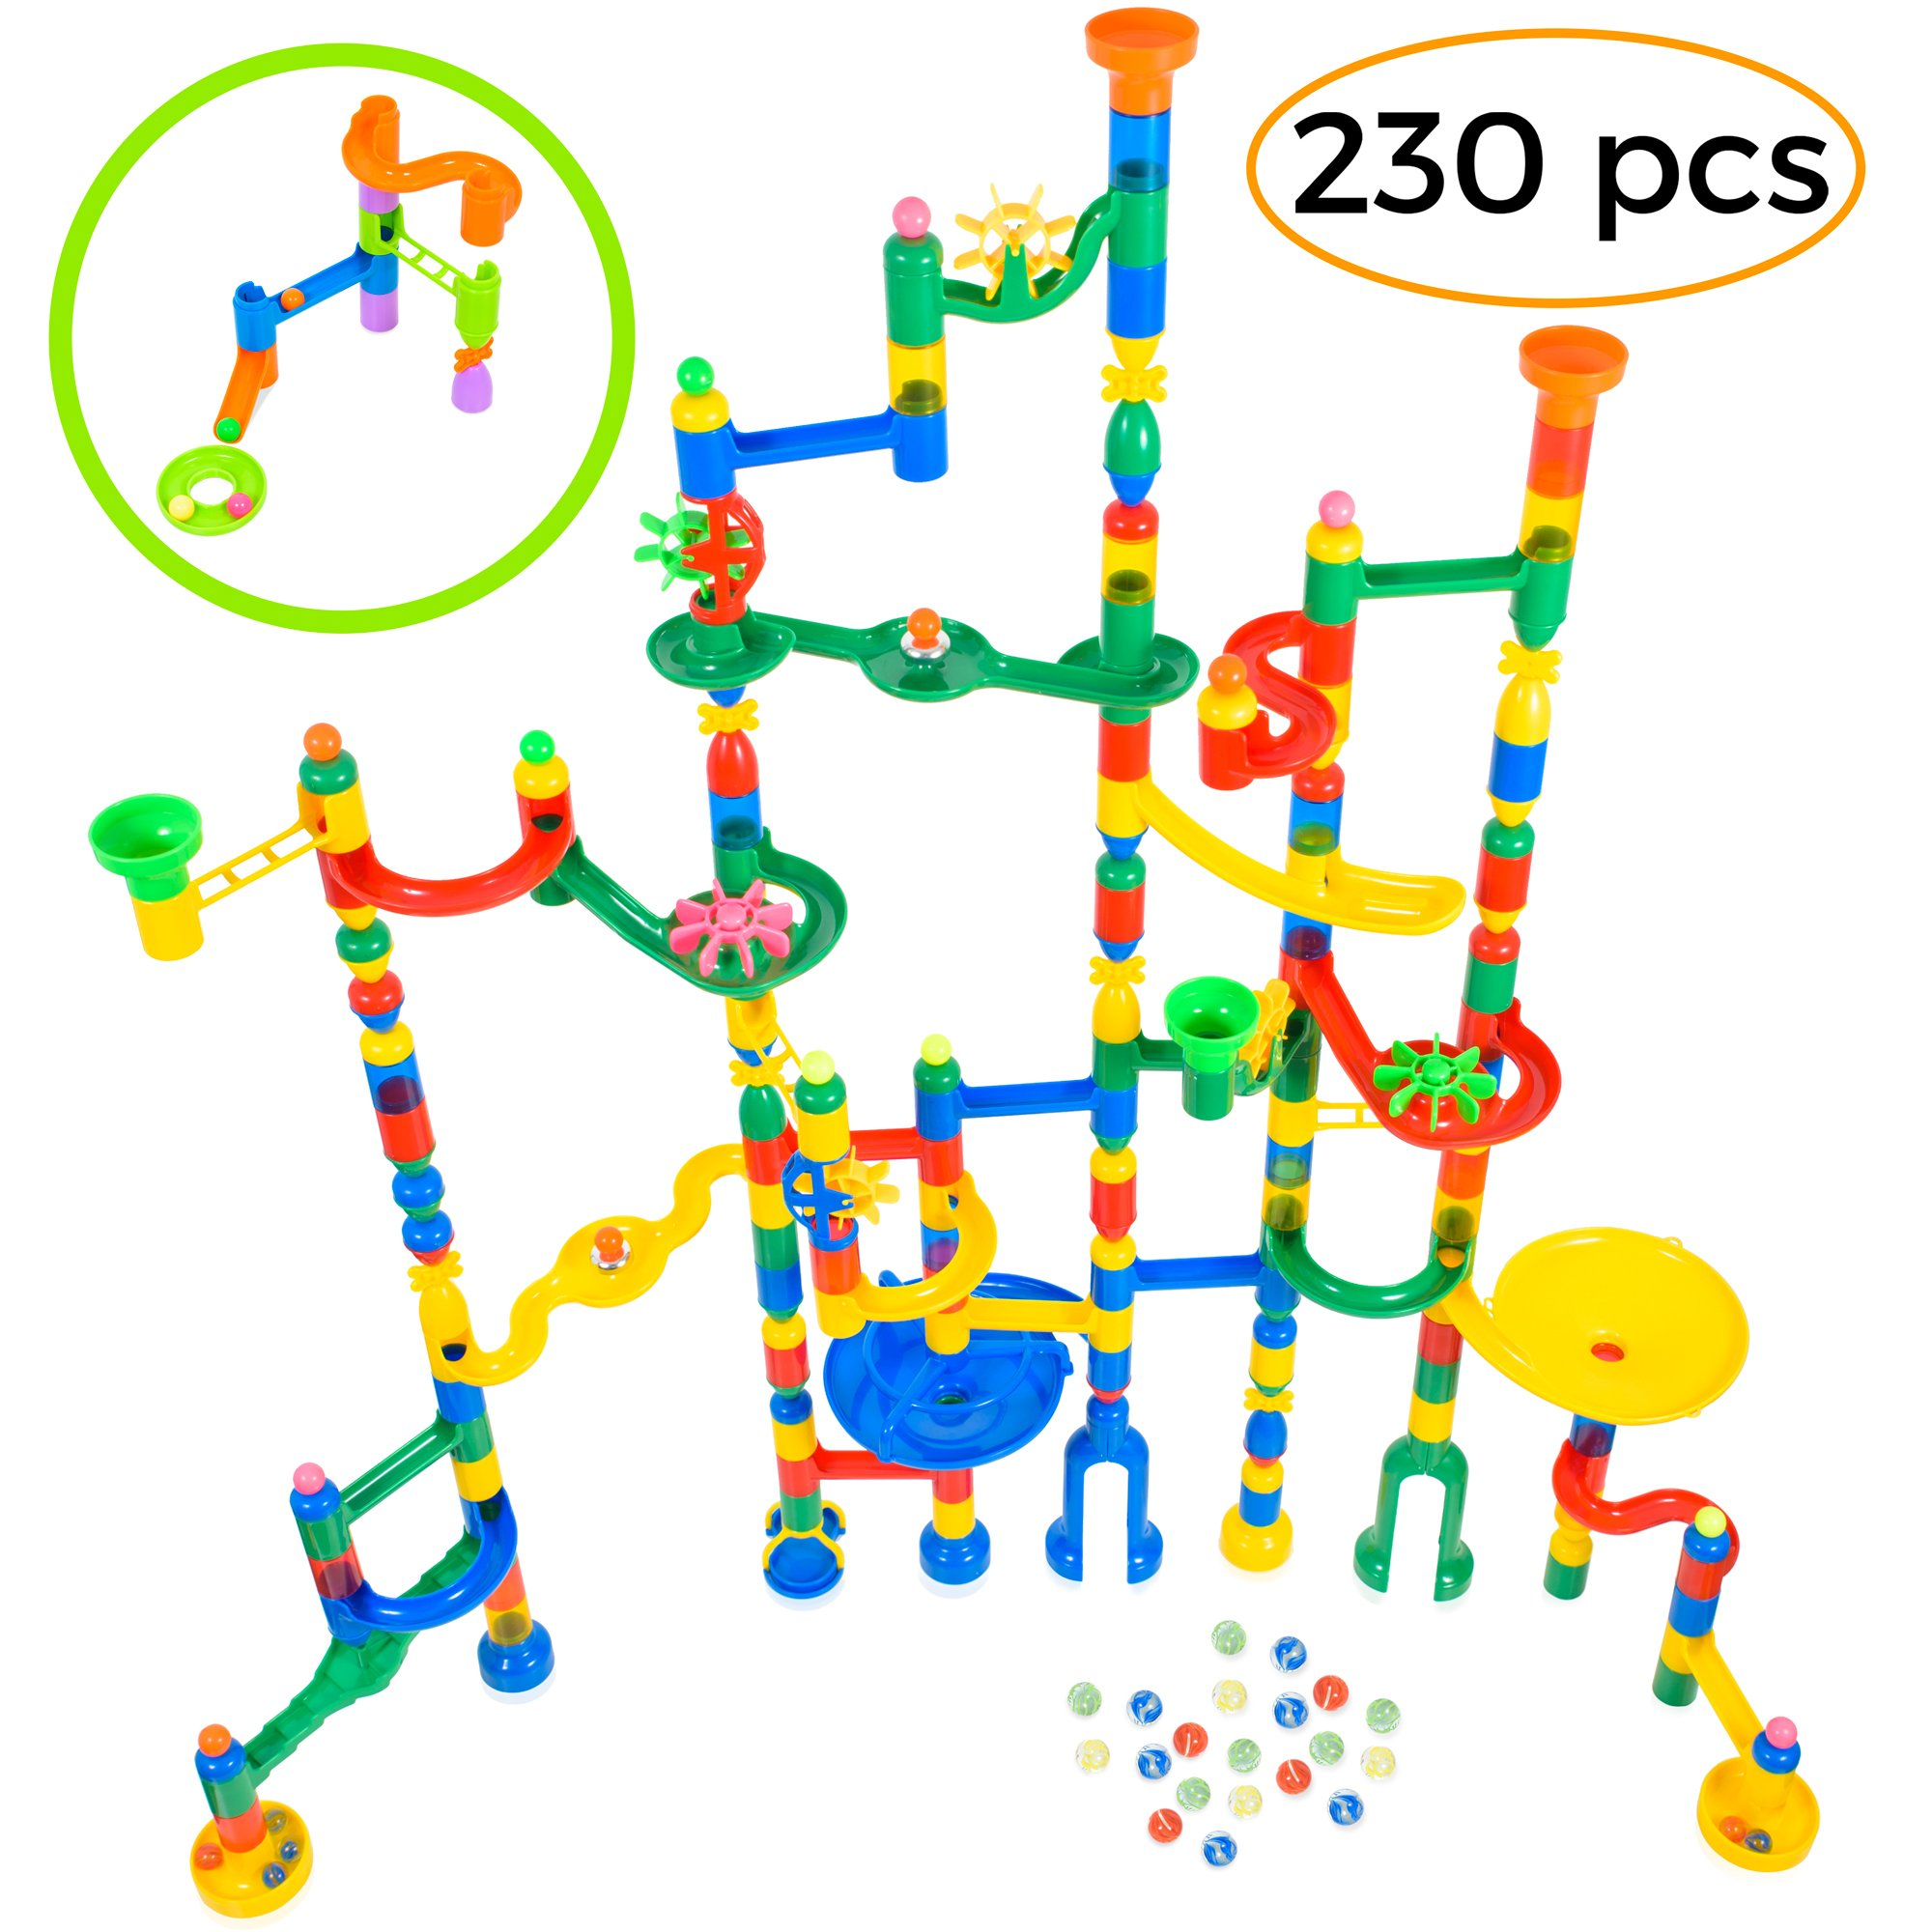 MagicJourney Giant Marble Run Toy Track Super Set Game 230 Piece Marble Maze Building Sets w/ 200 Colorful Marble Tracks, 30 Marbles & 4 Challenge Levels for STEM Learning, Endless Educational Fun